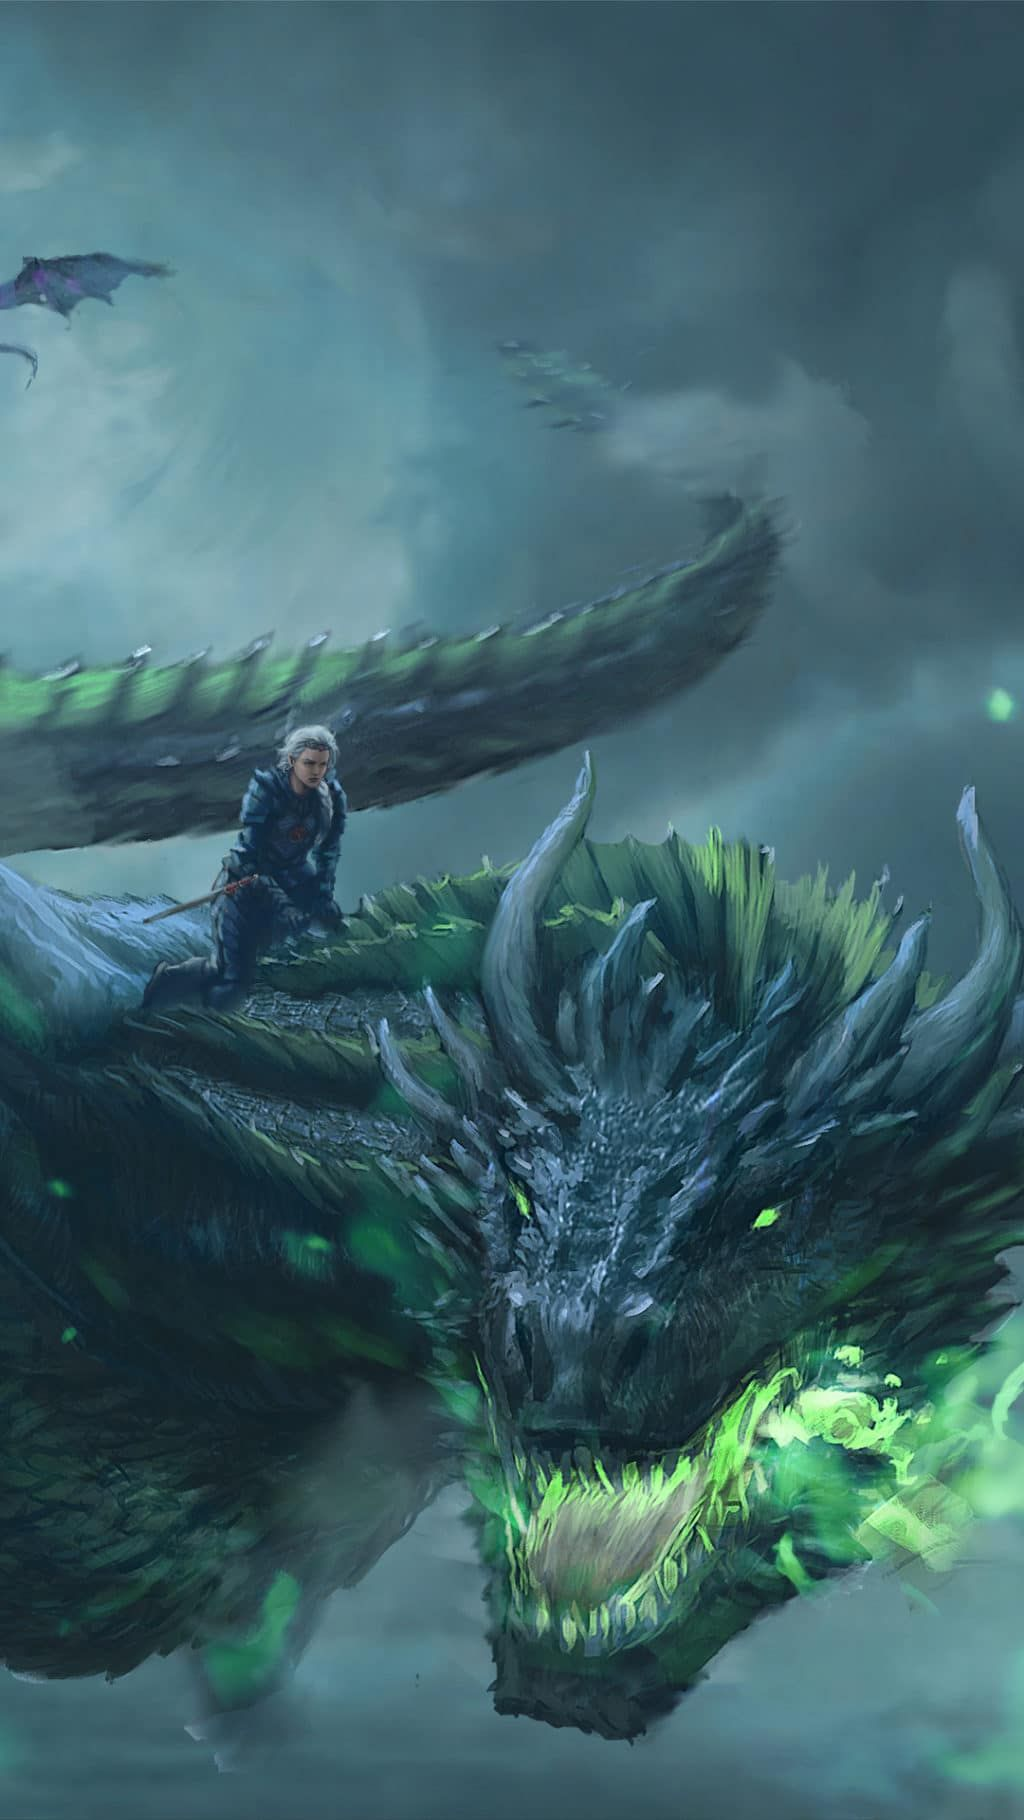 Cool Game Of Thrones Wallpapers For Iphone And Ipad Dragon